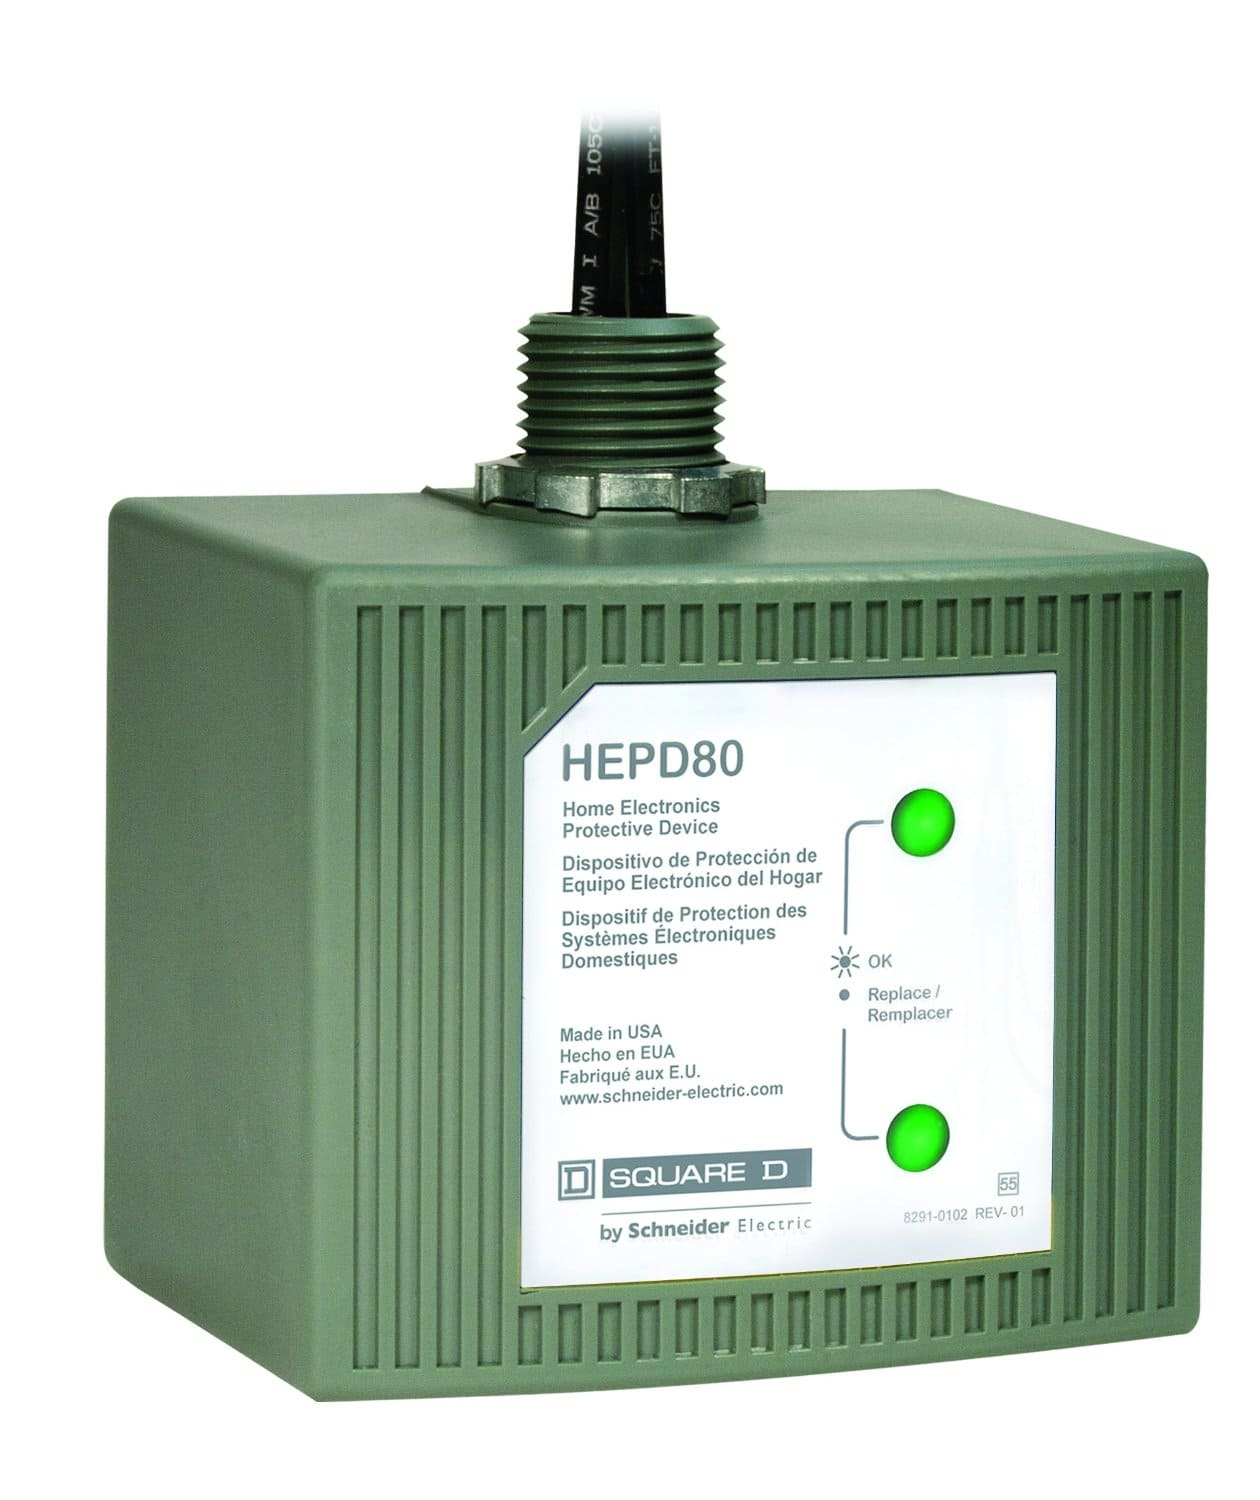 Square D by Schneider Electric HEPD80 Whole House Surge protector $75 amazon $70 AC homedepot